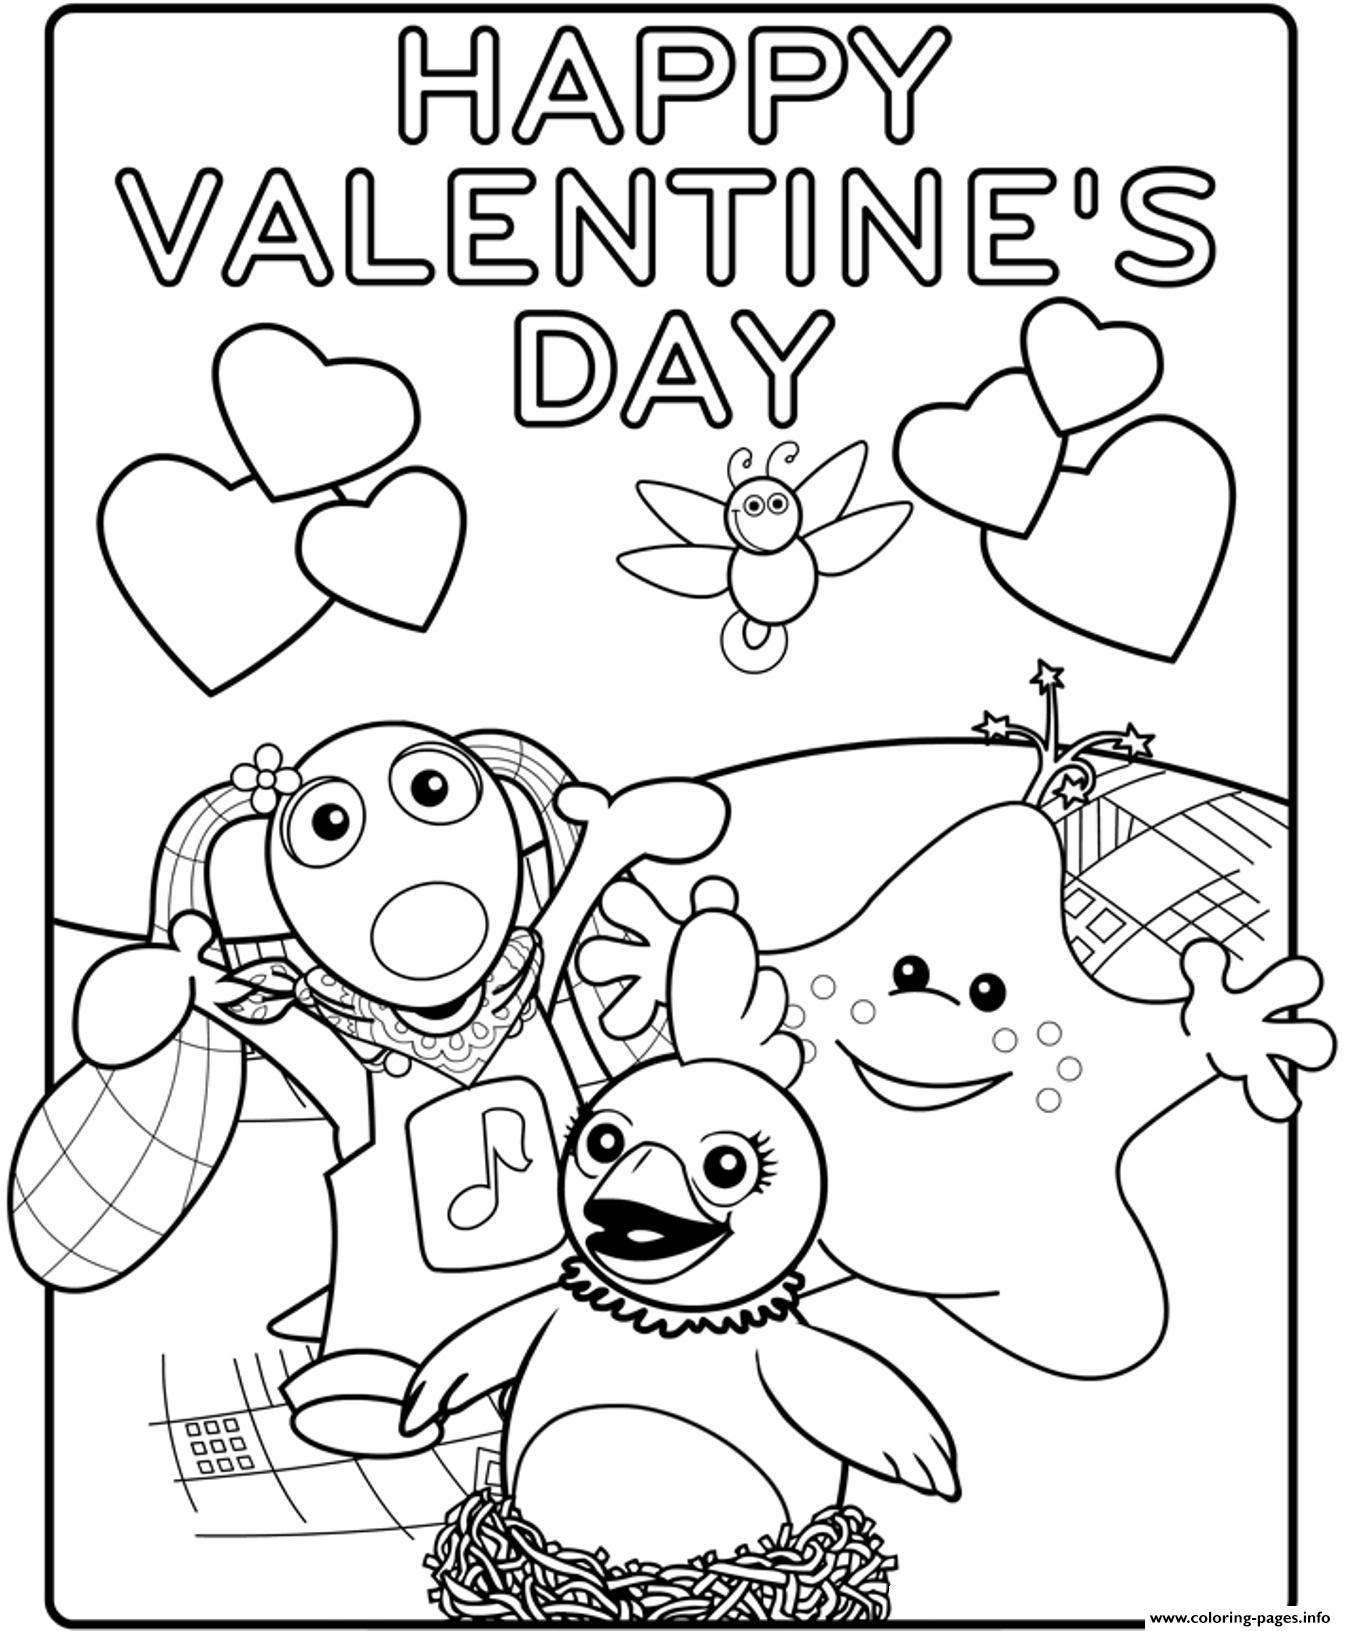 Kids Happy Valentines Day S18b3a Coloring Pages Printable